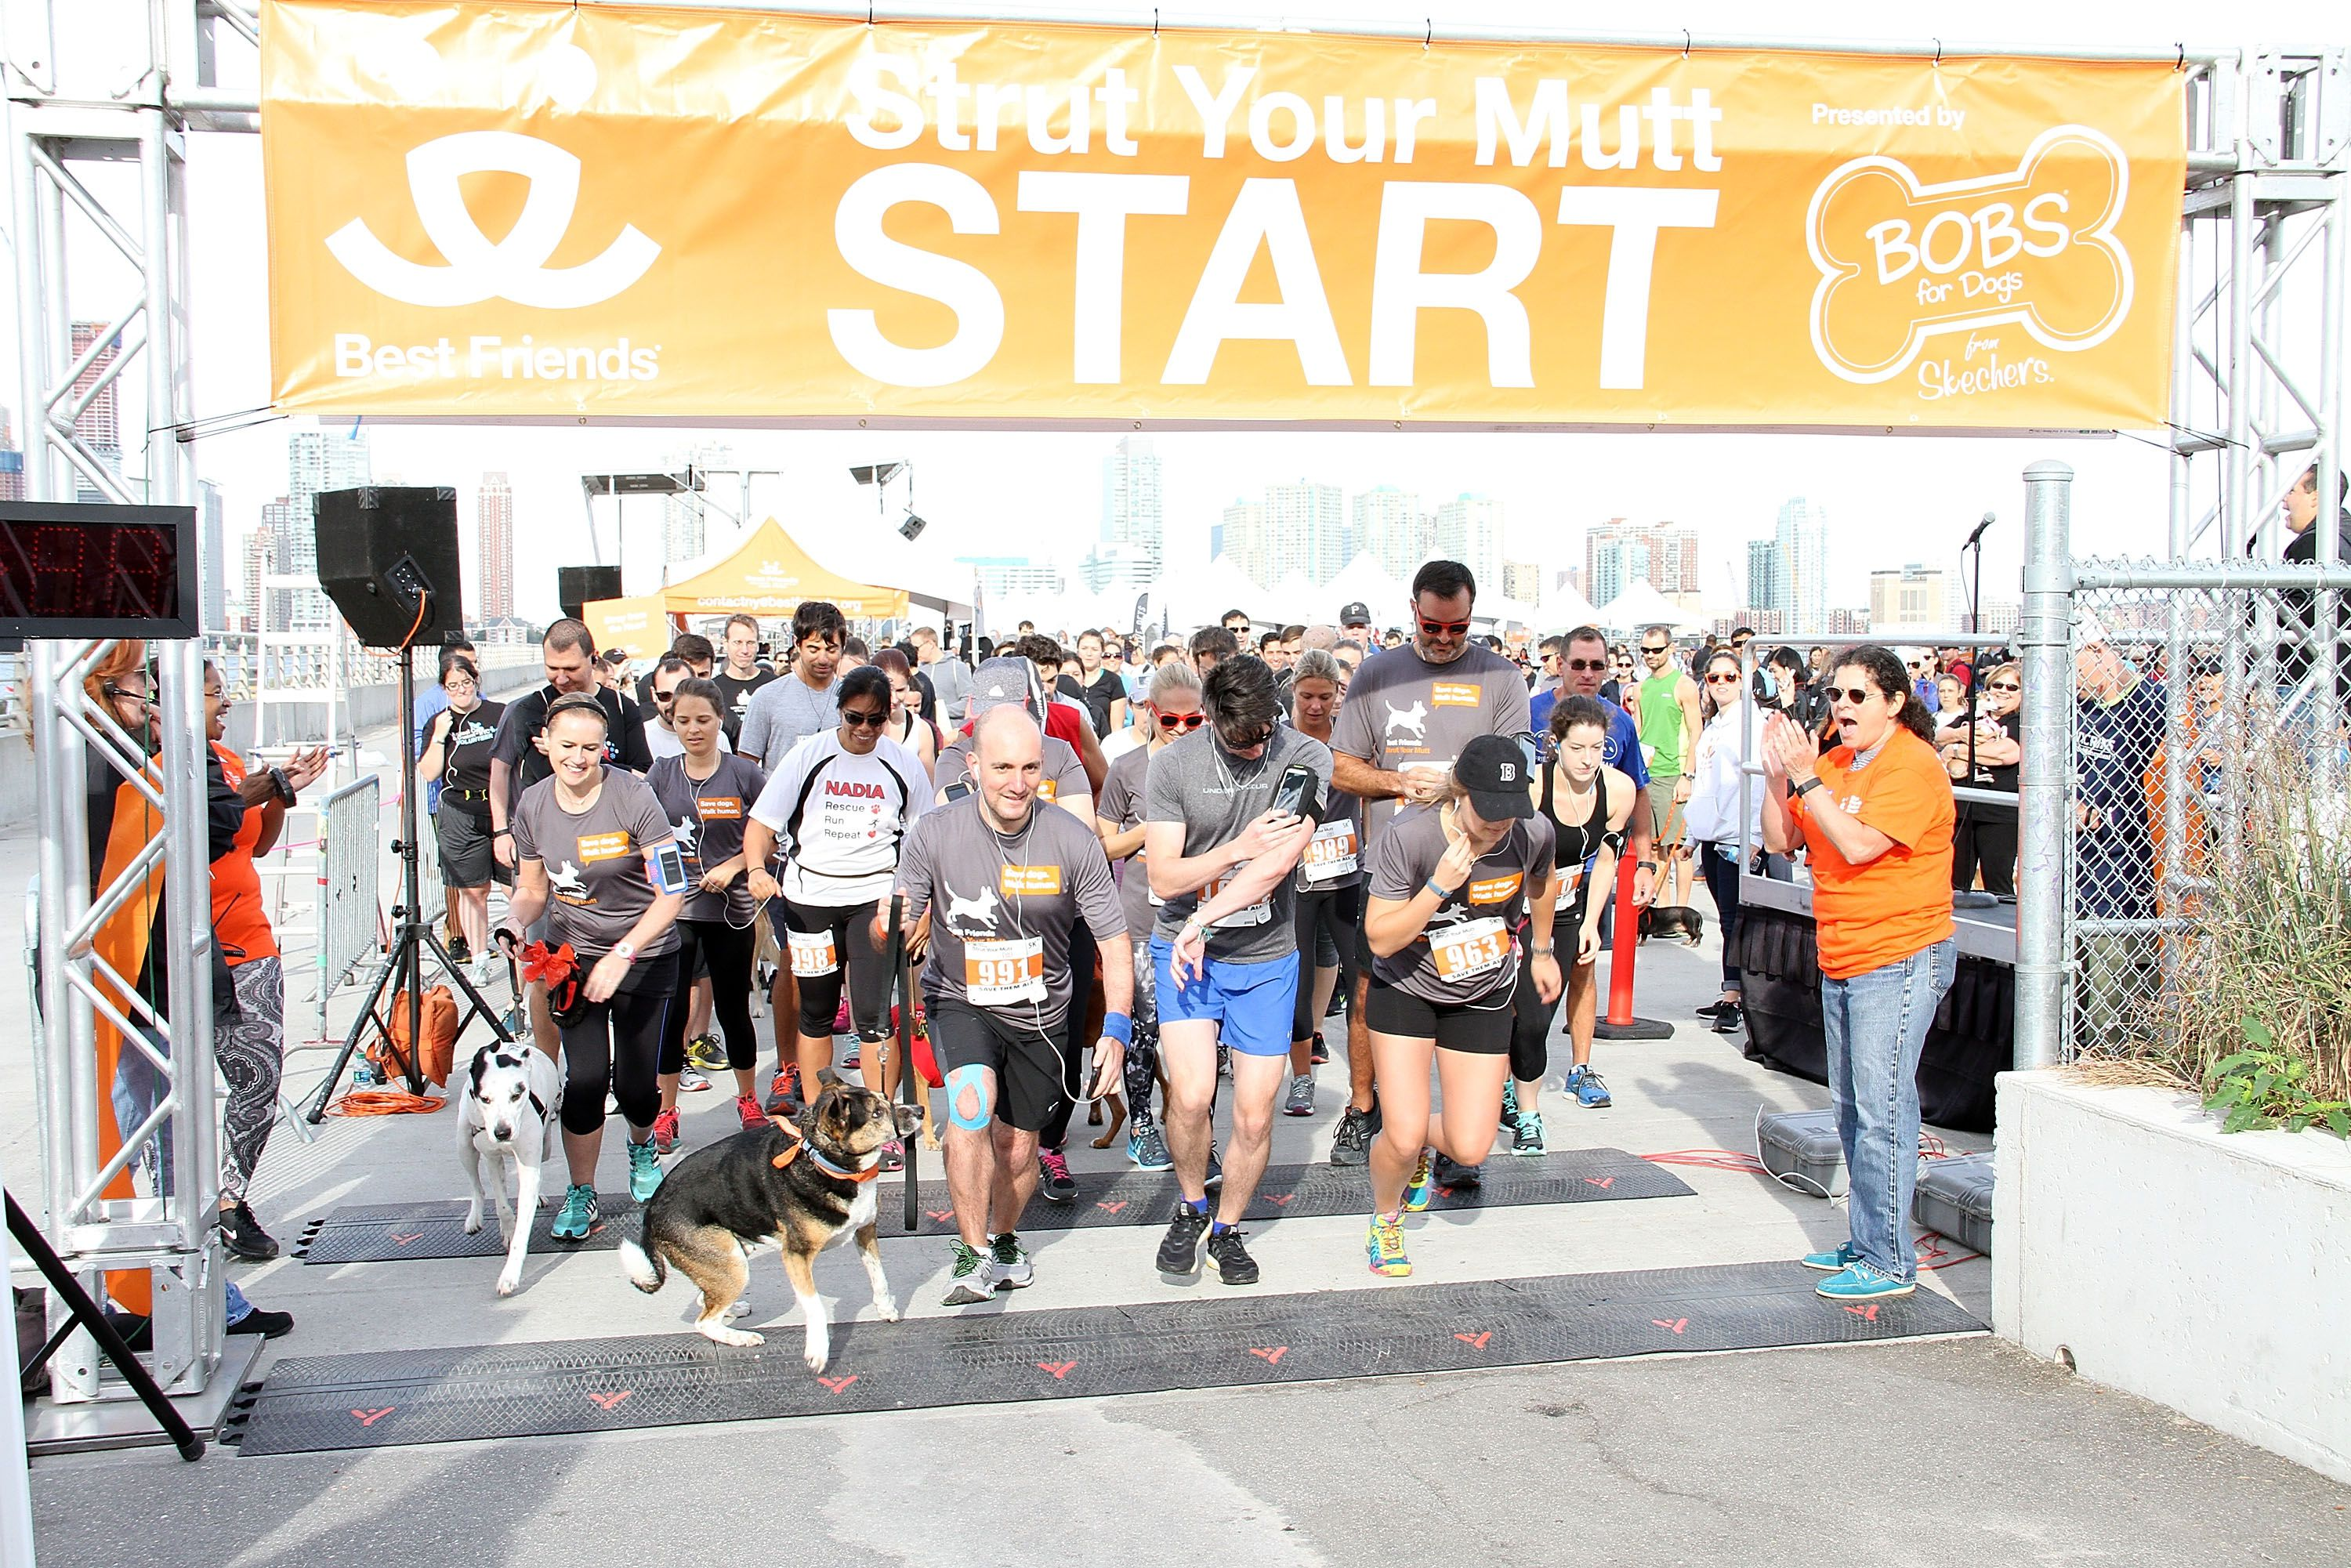 A Strut Your Mutt event, sponsored by Best Friends